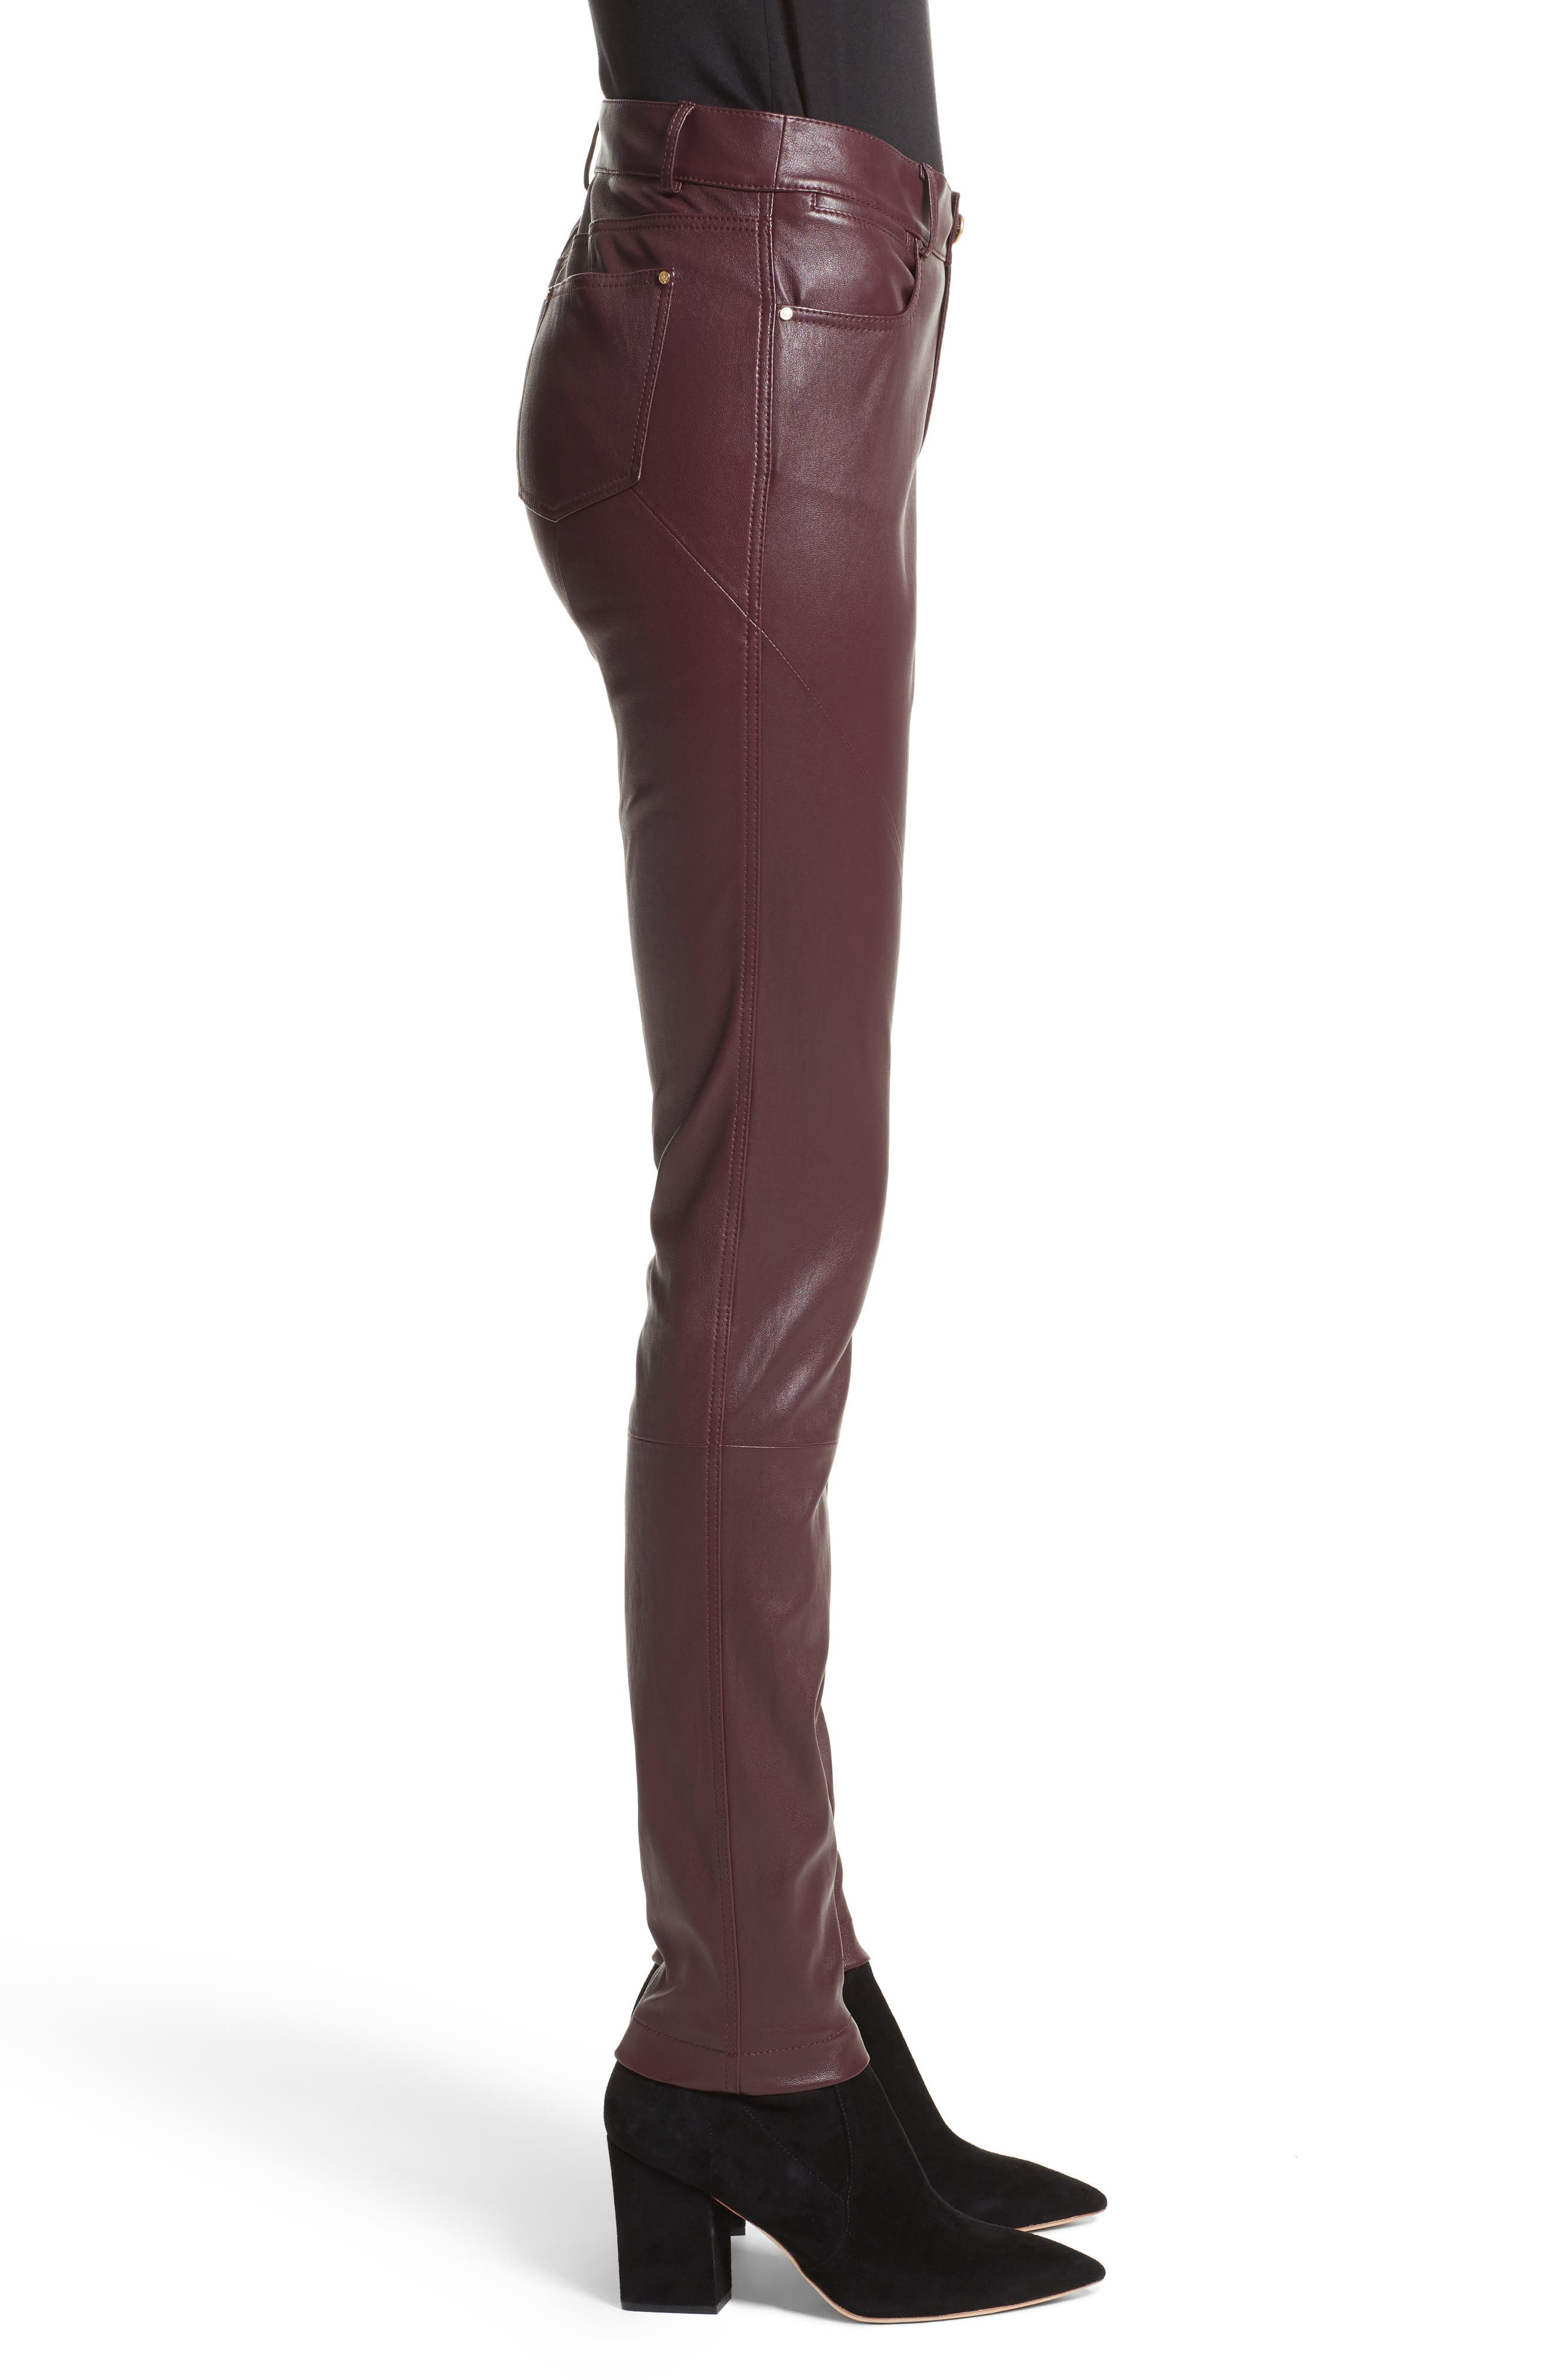 Mercer Nappa Leather Pants,                             Alternate thumbnail 3, color,                             Beet